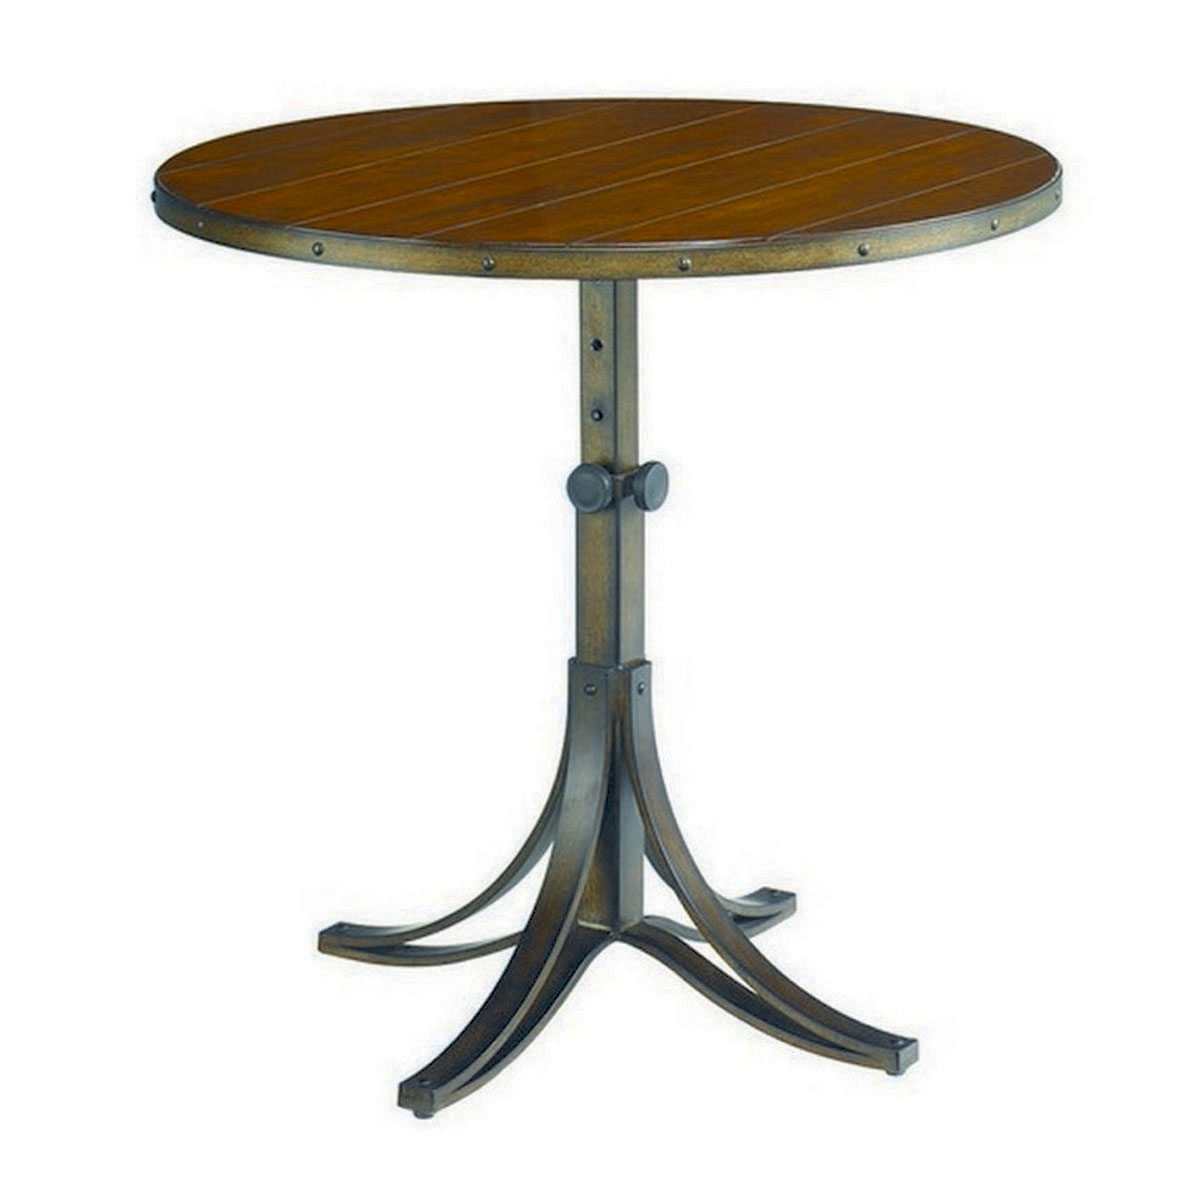 design for accent tables visuals mercantile round adjustable table zebi silver cabinet very small coffee teal accents hobby lobby console yellow decorative accessories ikea